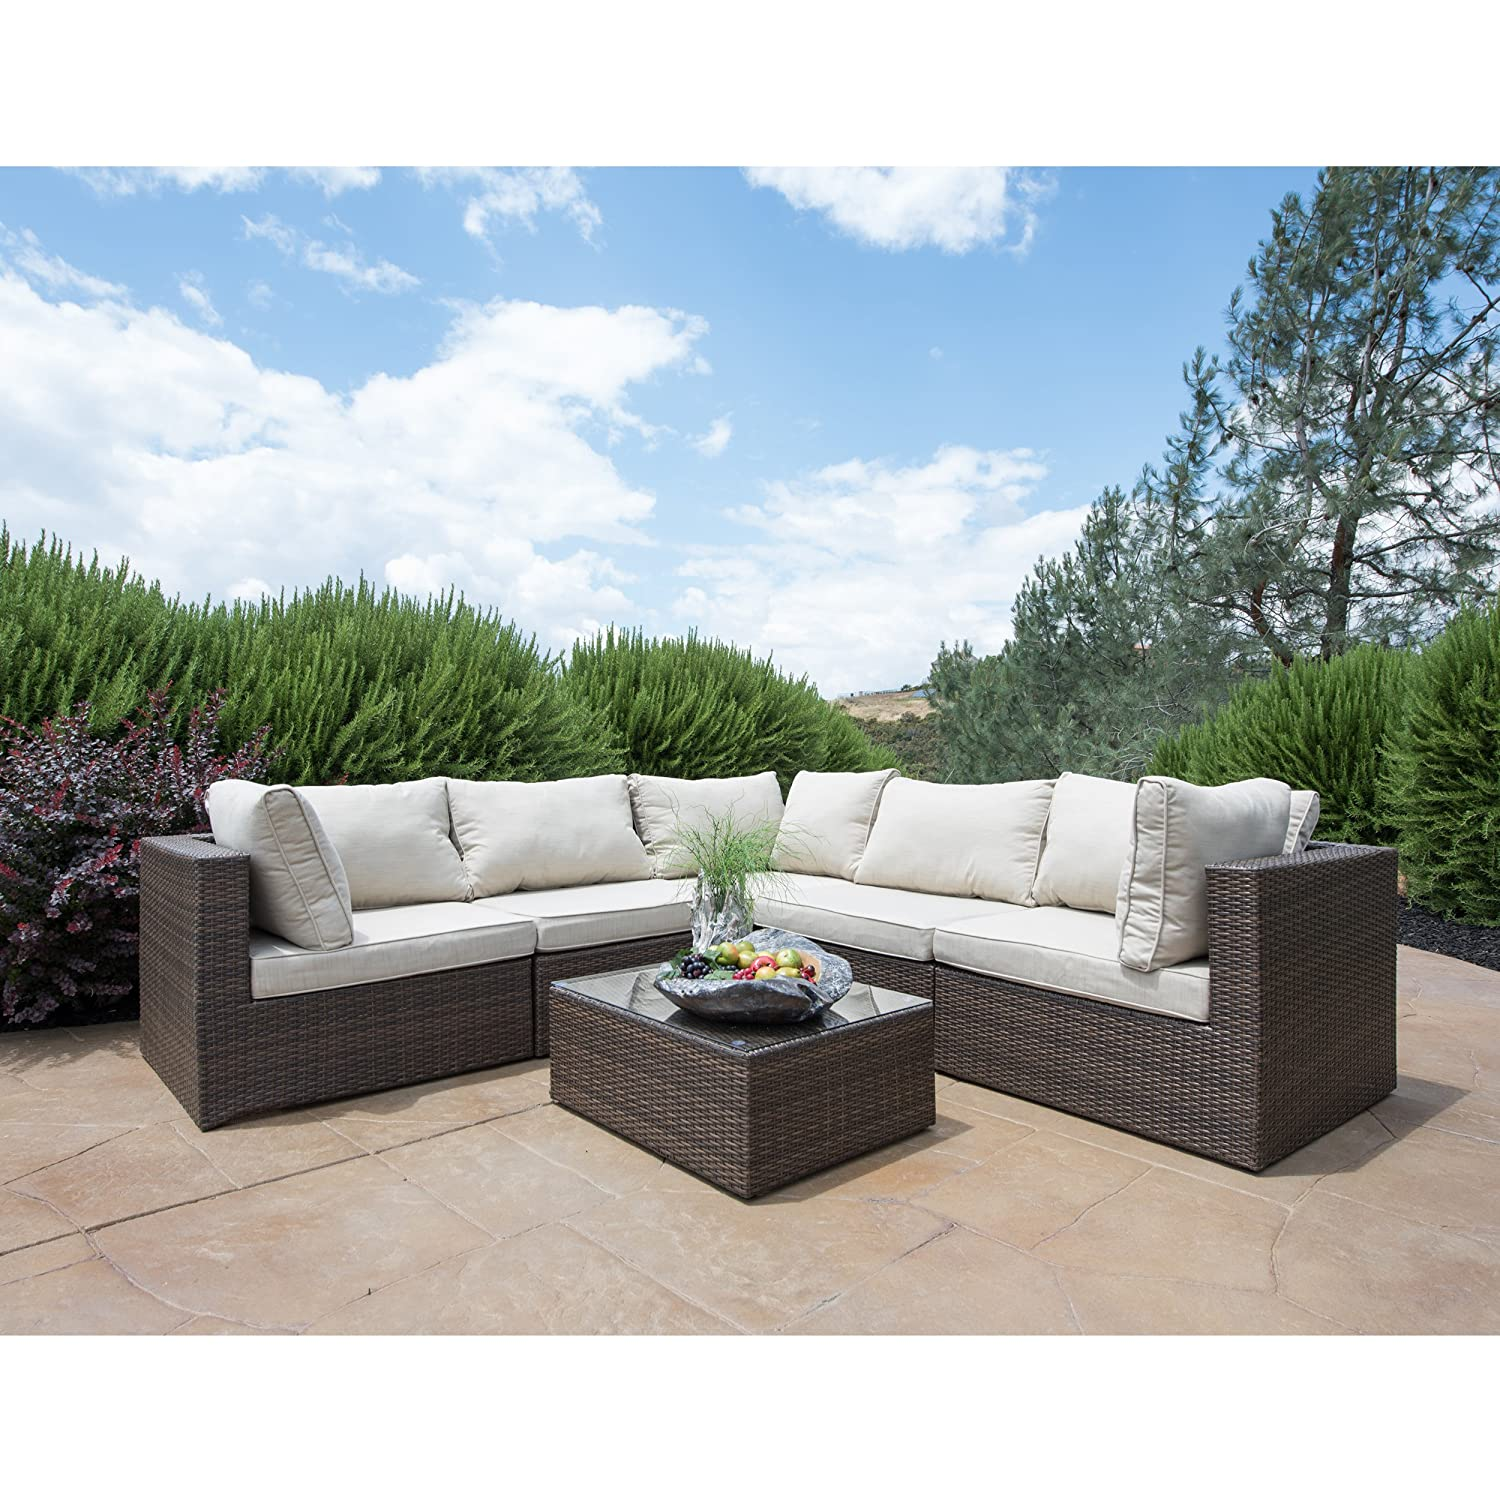 Amazon.com : Supernova Outdoor Patio 6pc Sectional Furniture Wicker Rattan Sofa  Set (6 Pcs Sofa Set) : Garden U0026 Outdoor